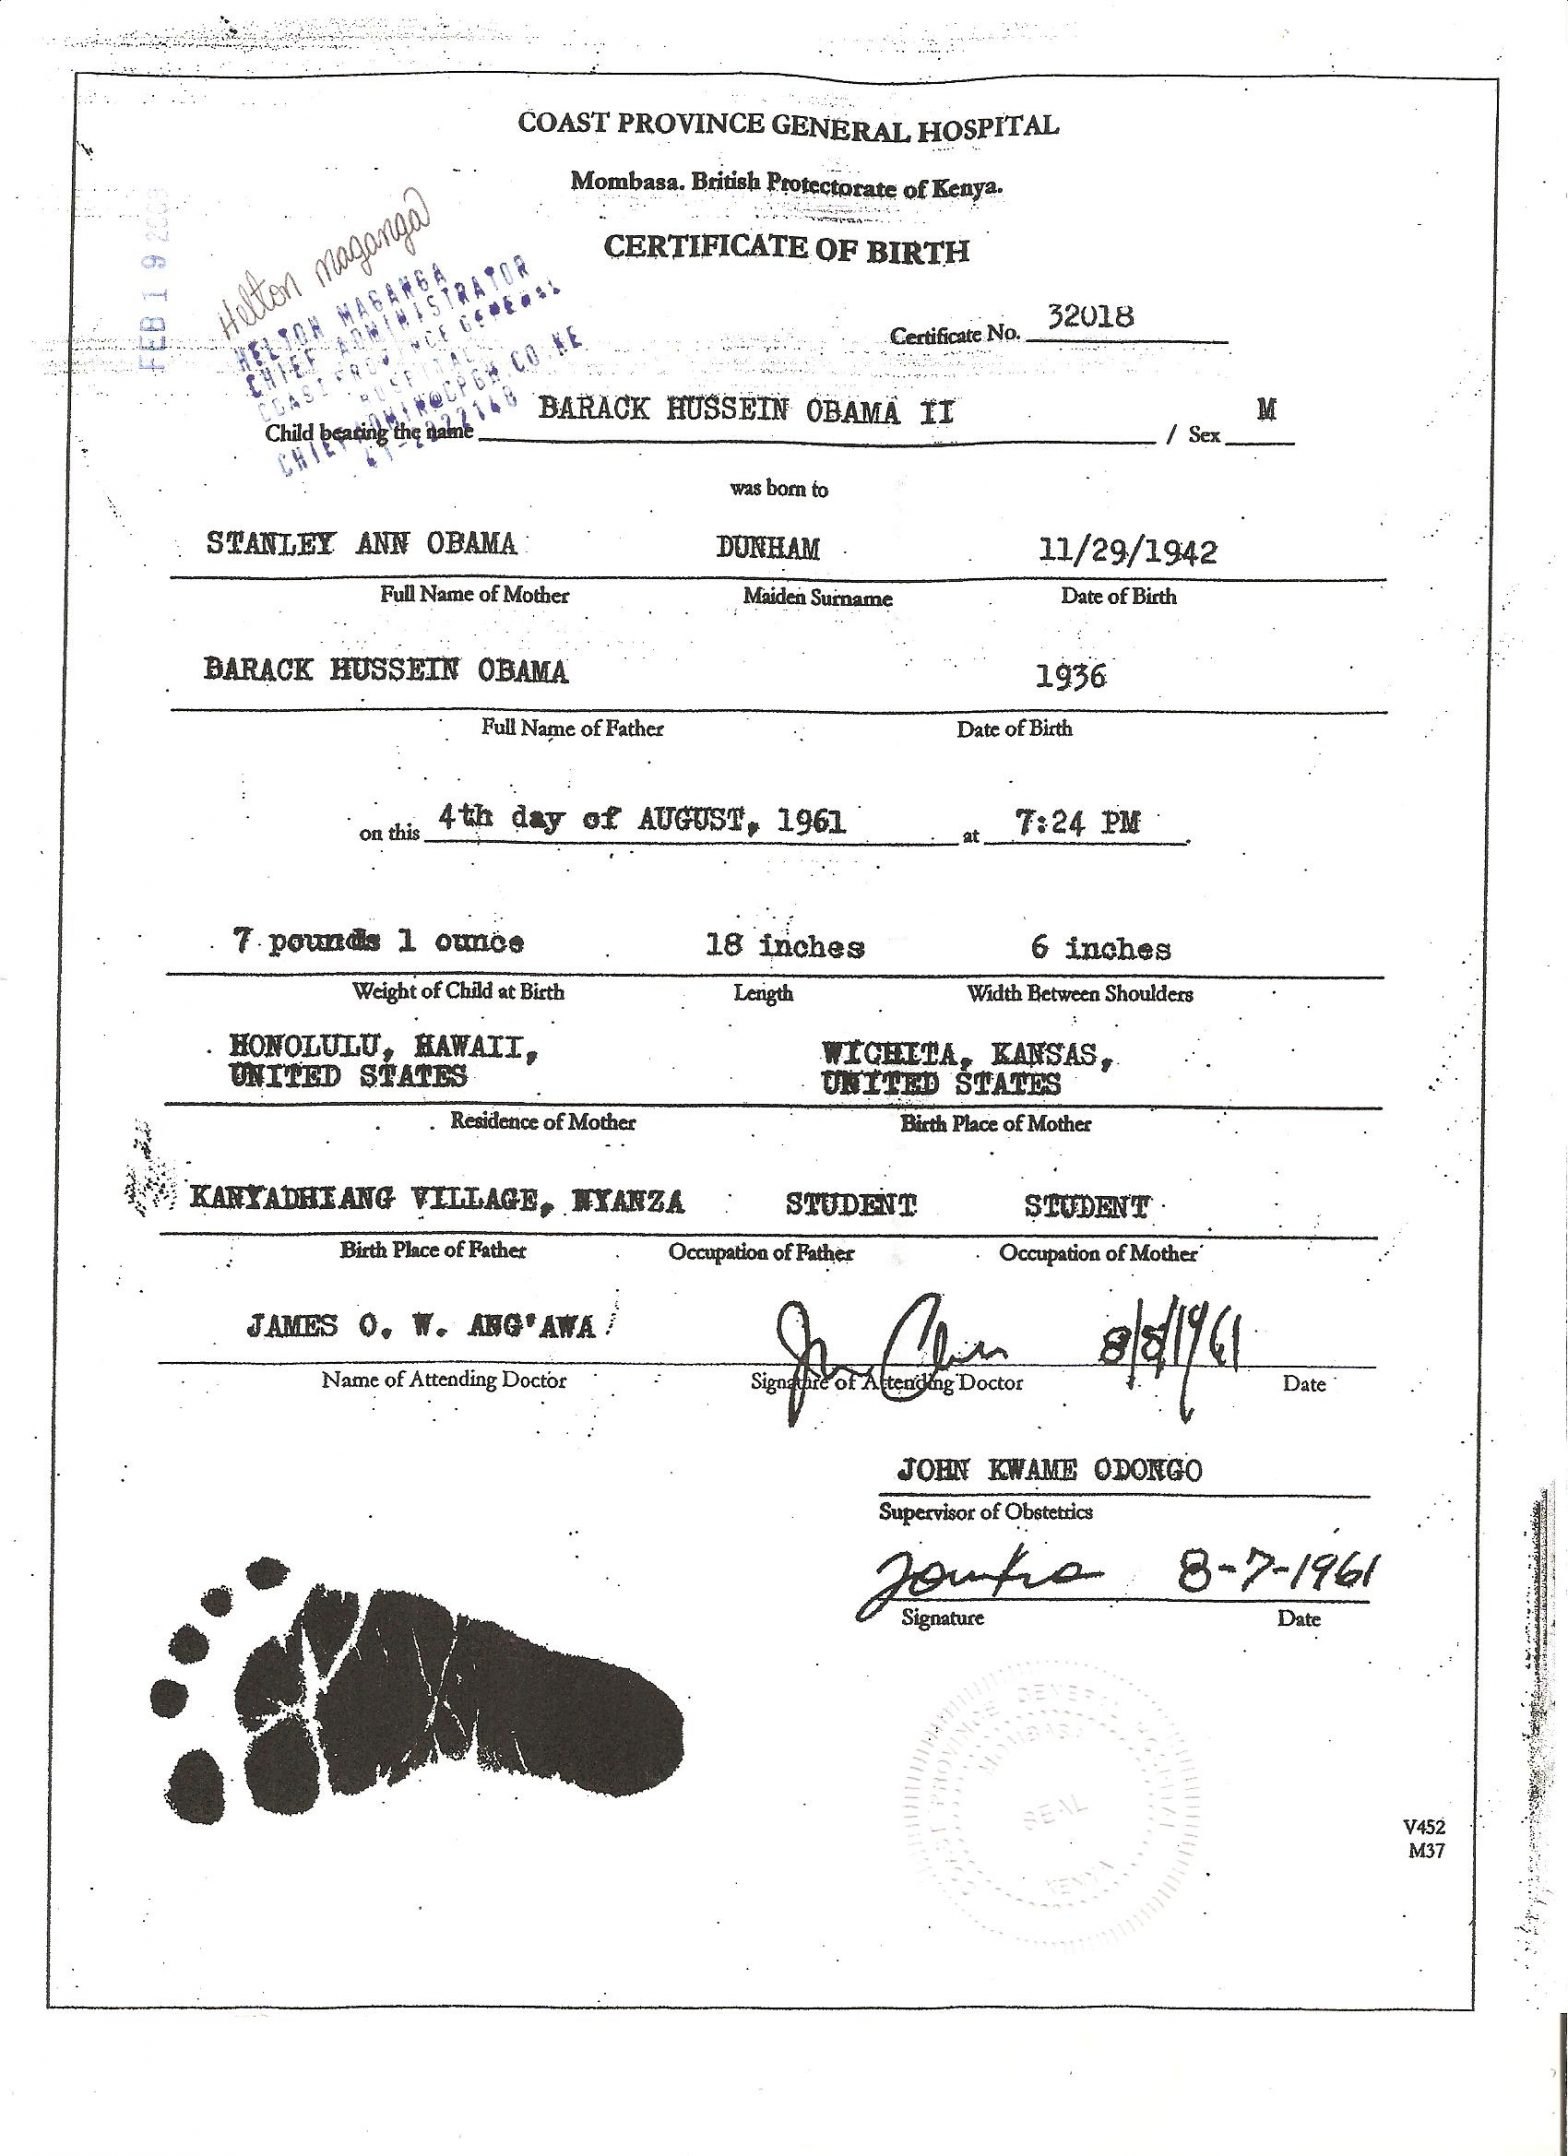 The Obama Birth Certificate